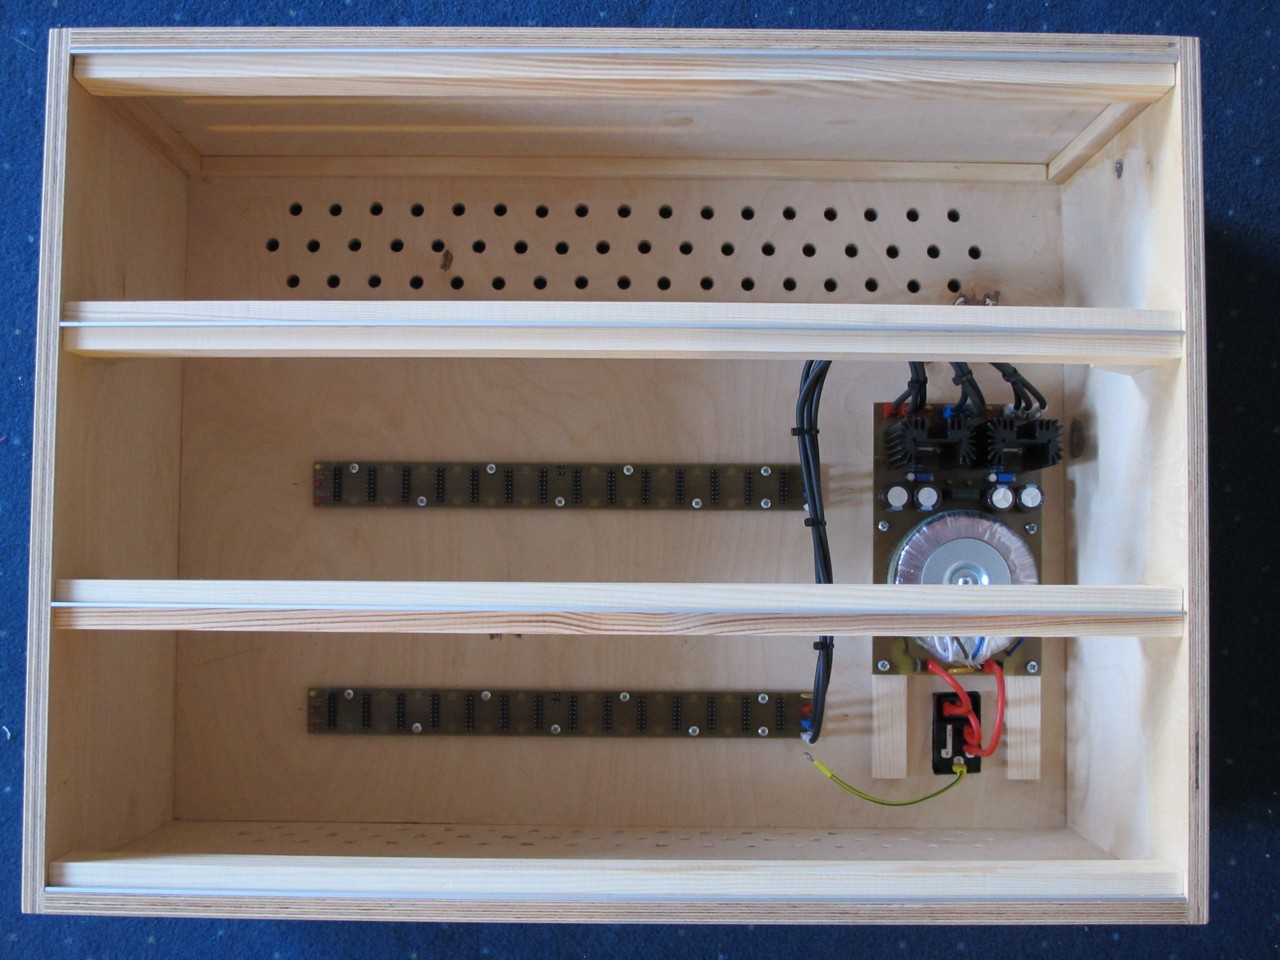 Finished modular synth case